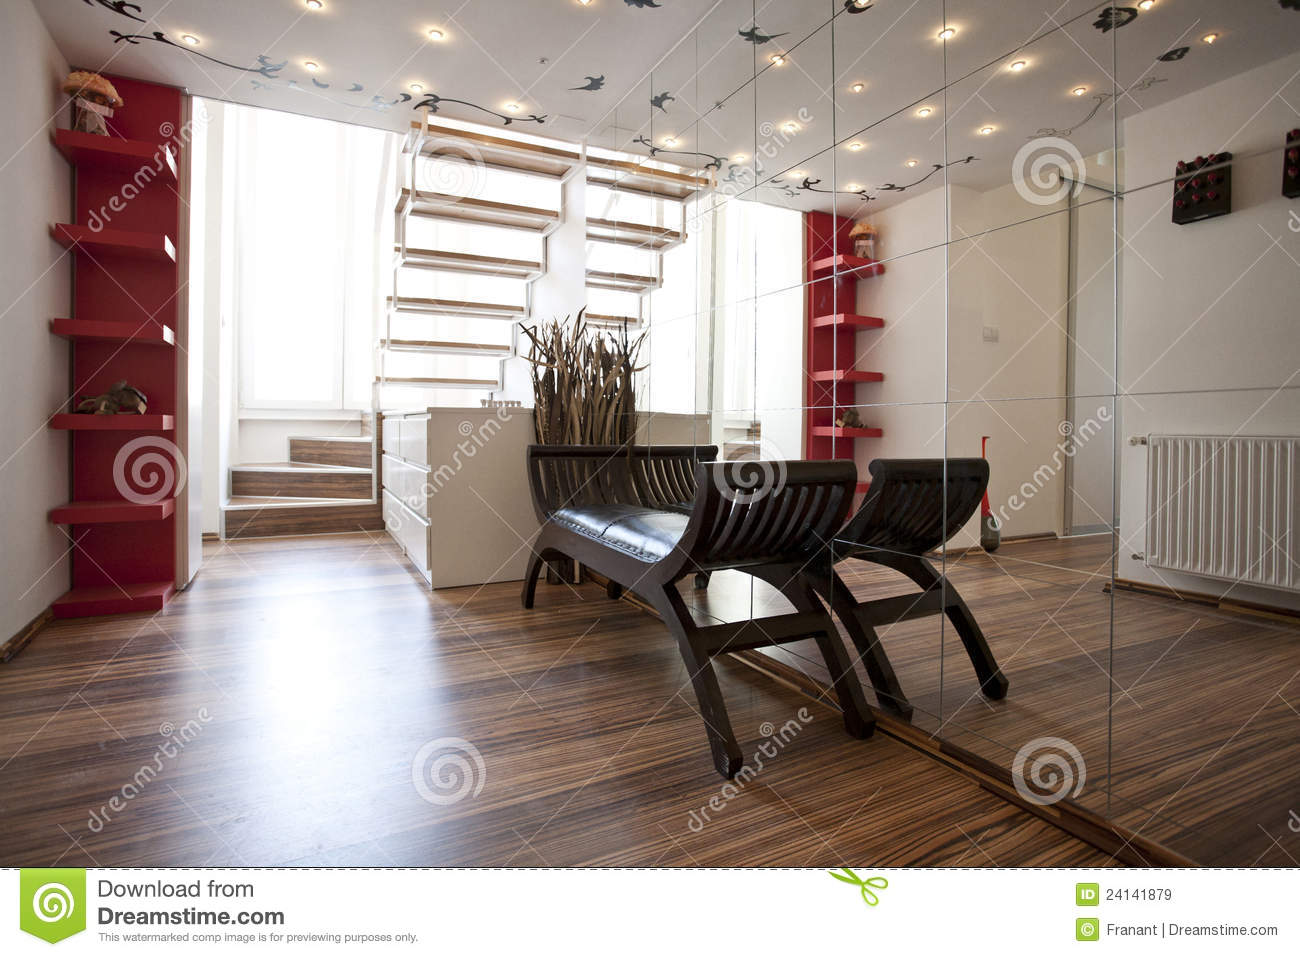 Home lobby interior design royalty free stock images for Home interior design photo gallery